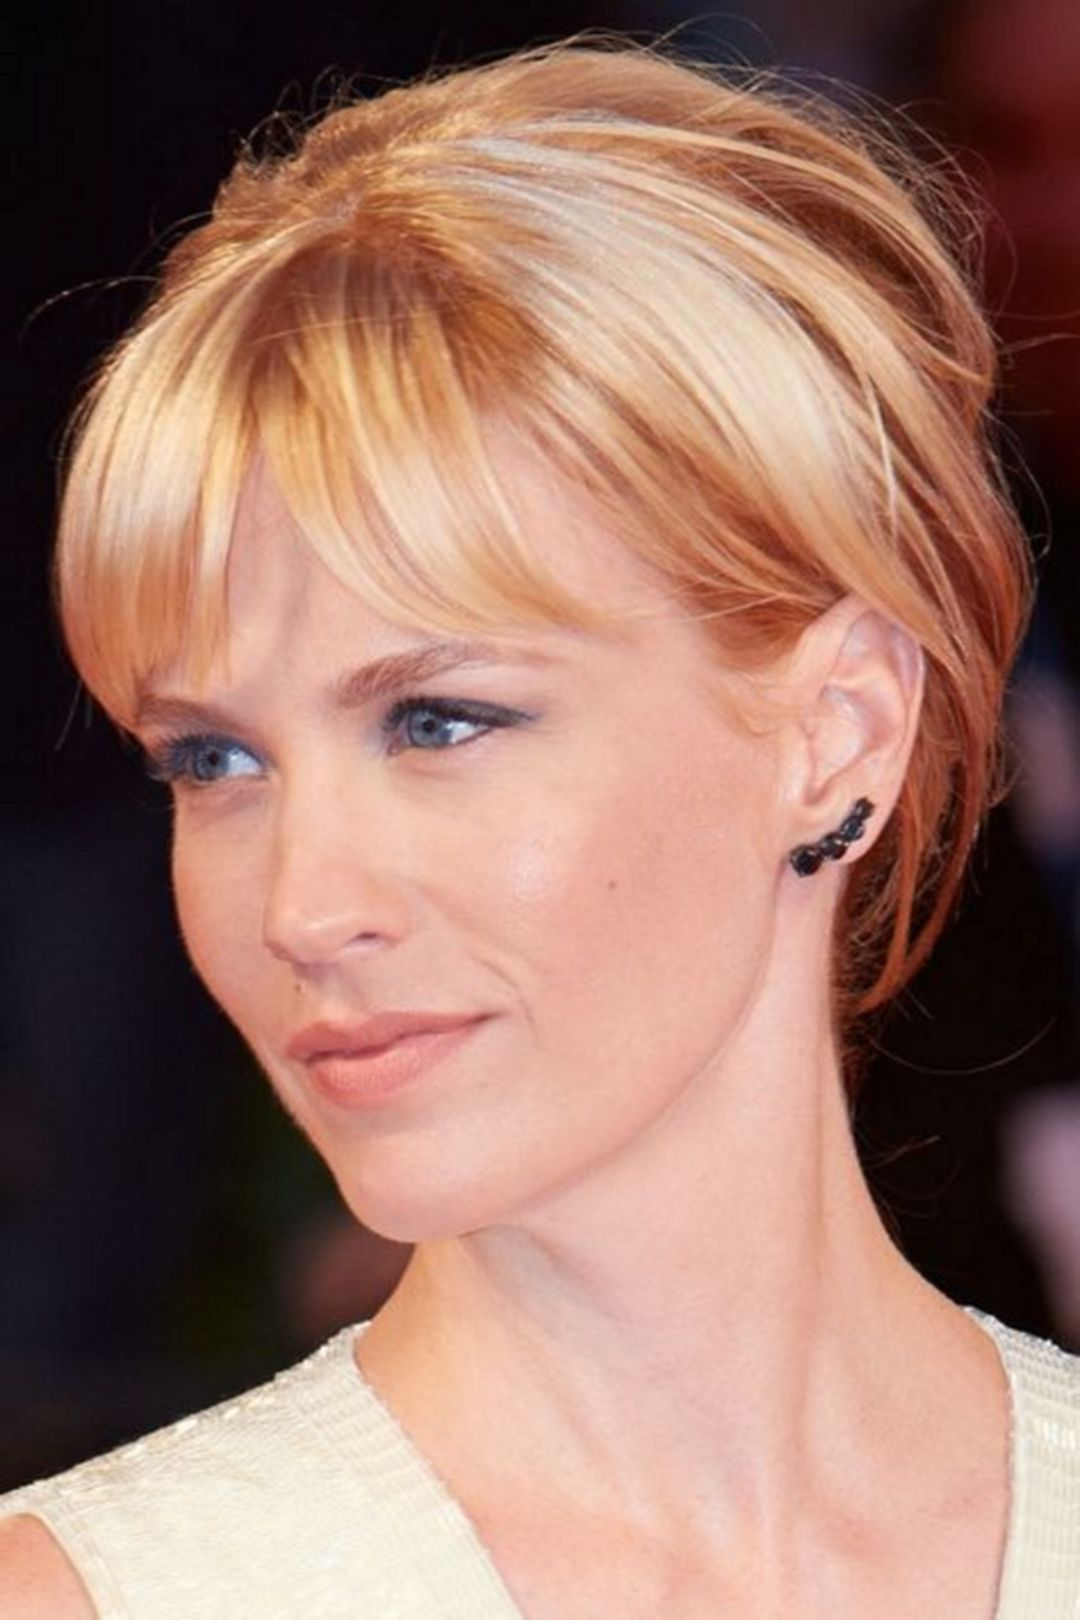 Awesome short hair cuts for beautiful women hairstyles cute